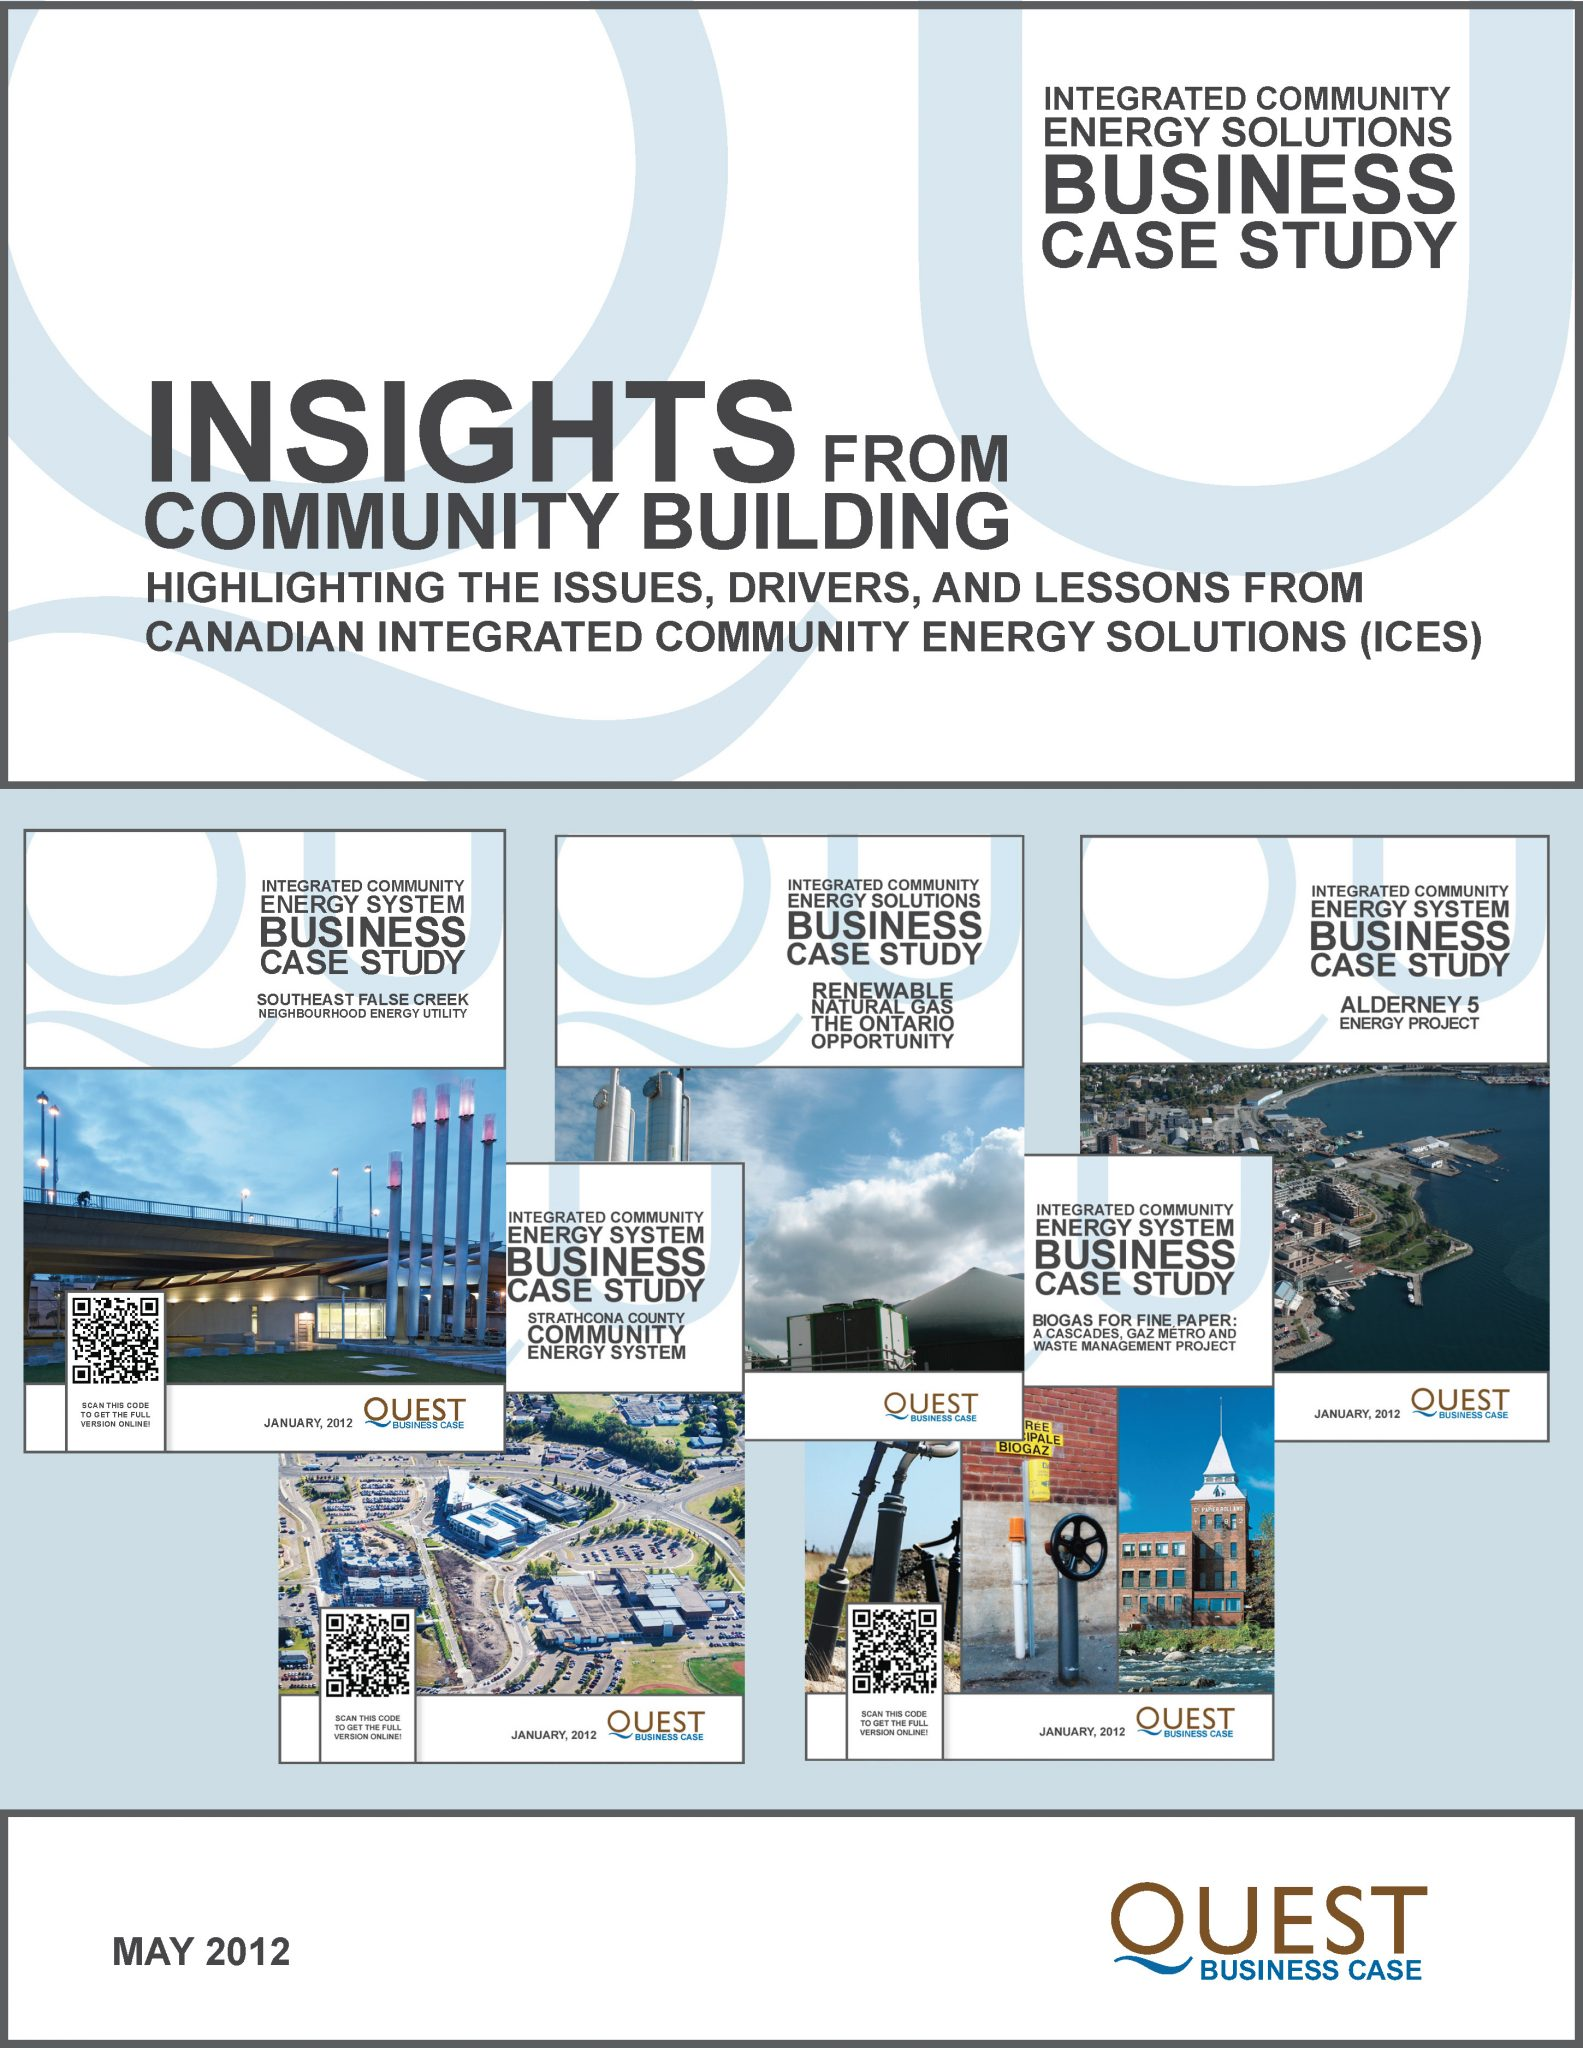 Business Cases Summary: Insights from Community Building